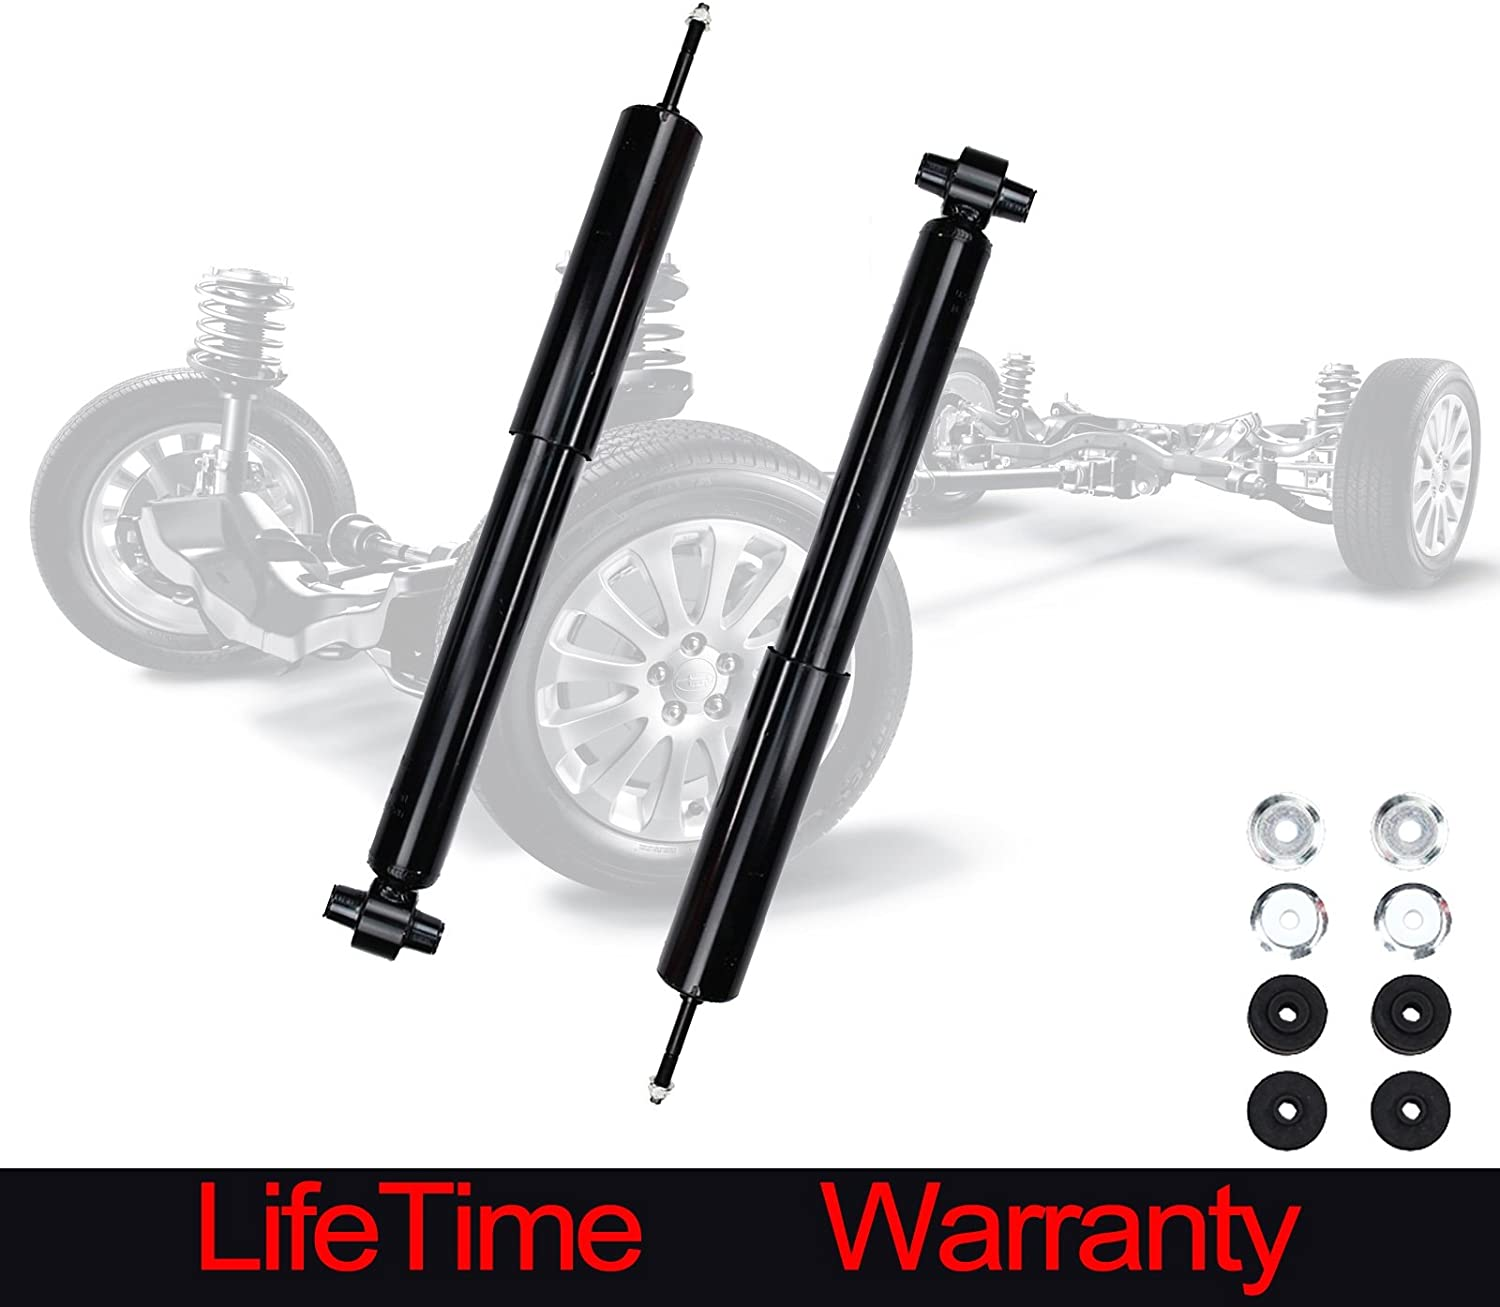 Both Rear Driver /& Passenger Side Shock Absorber Set for 03-11 Crown Victoria - 03-11 Town Car 2 - 03-08 Grand Marquis